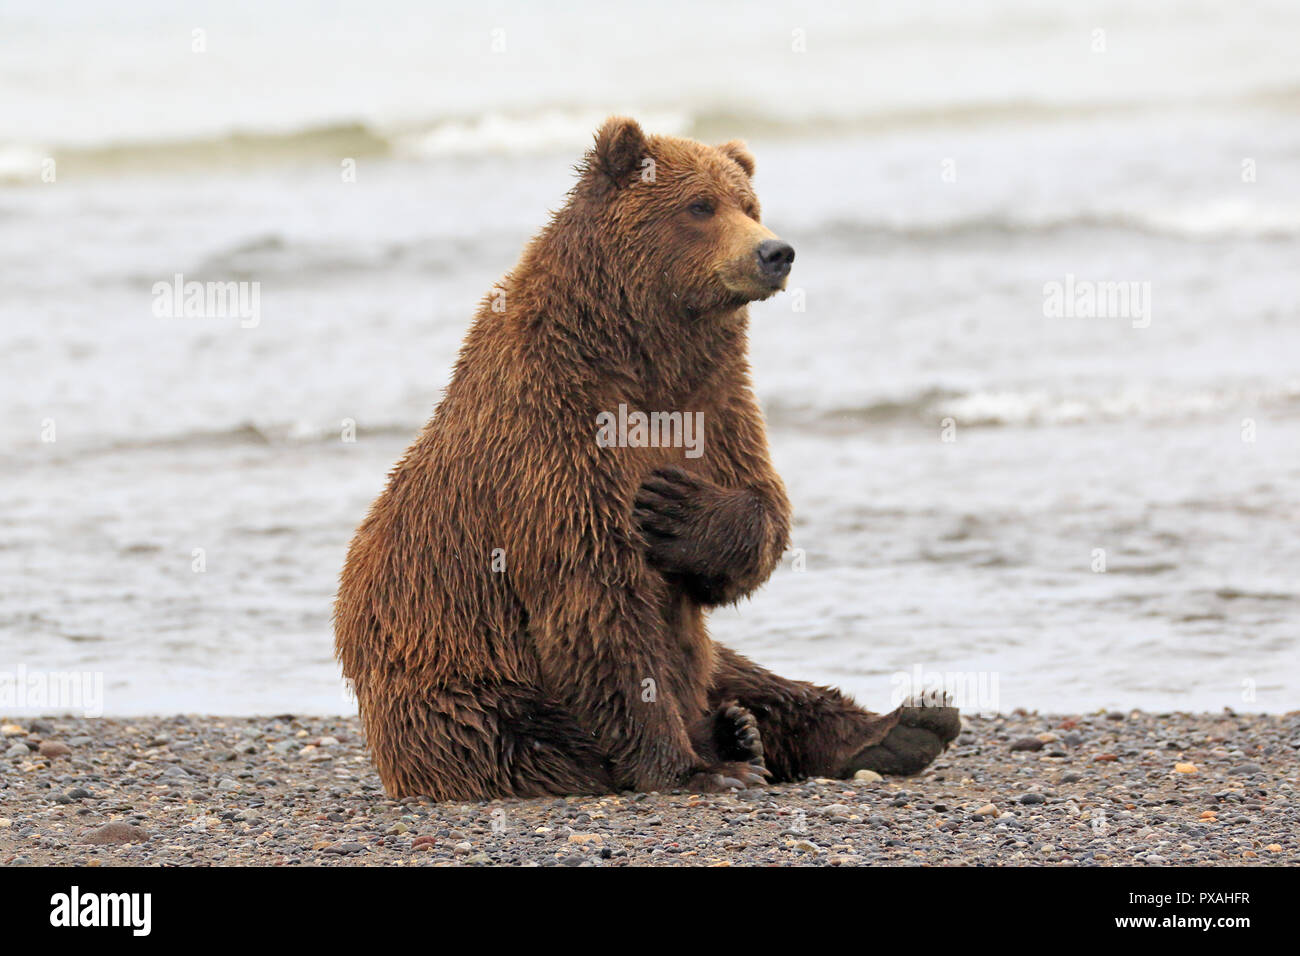 Grizzly bear sitting up - photo#31